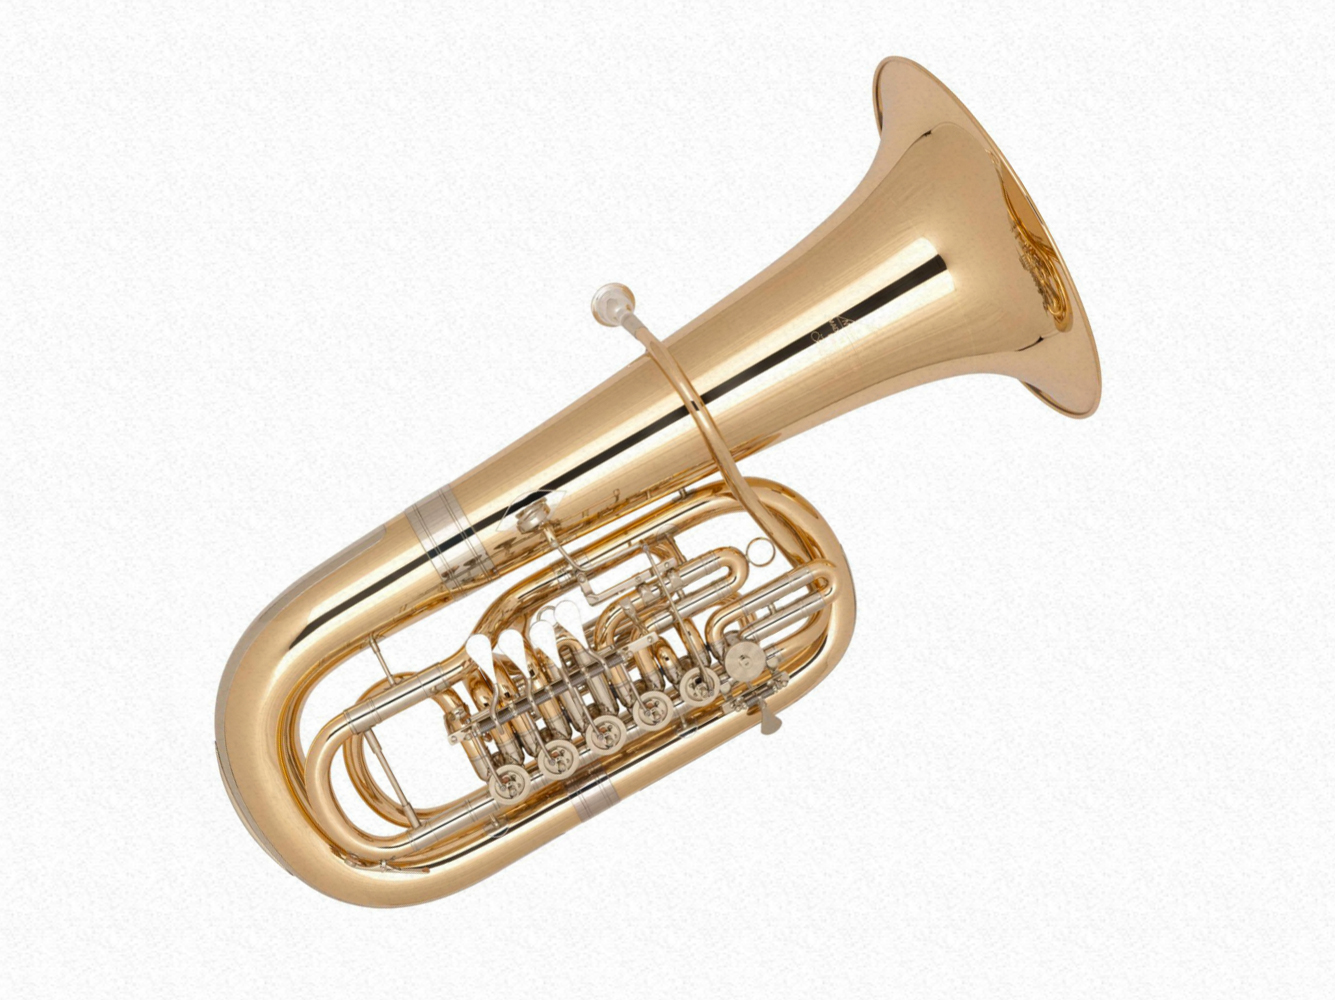 F Tuba: Miraphone 181 with Baer 181 Conversion